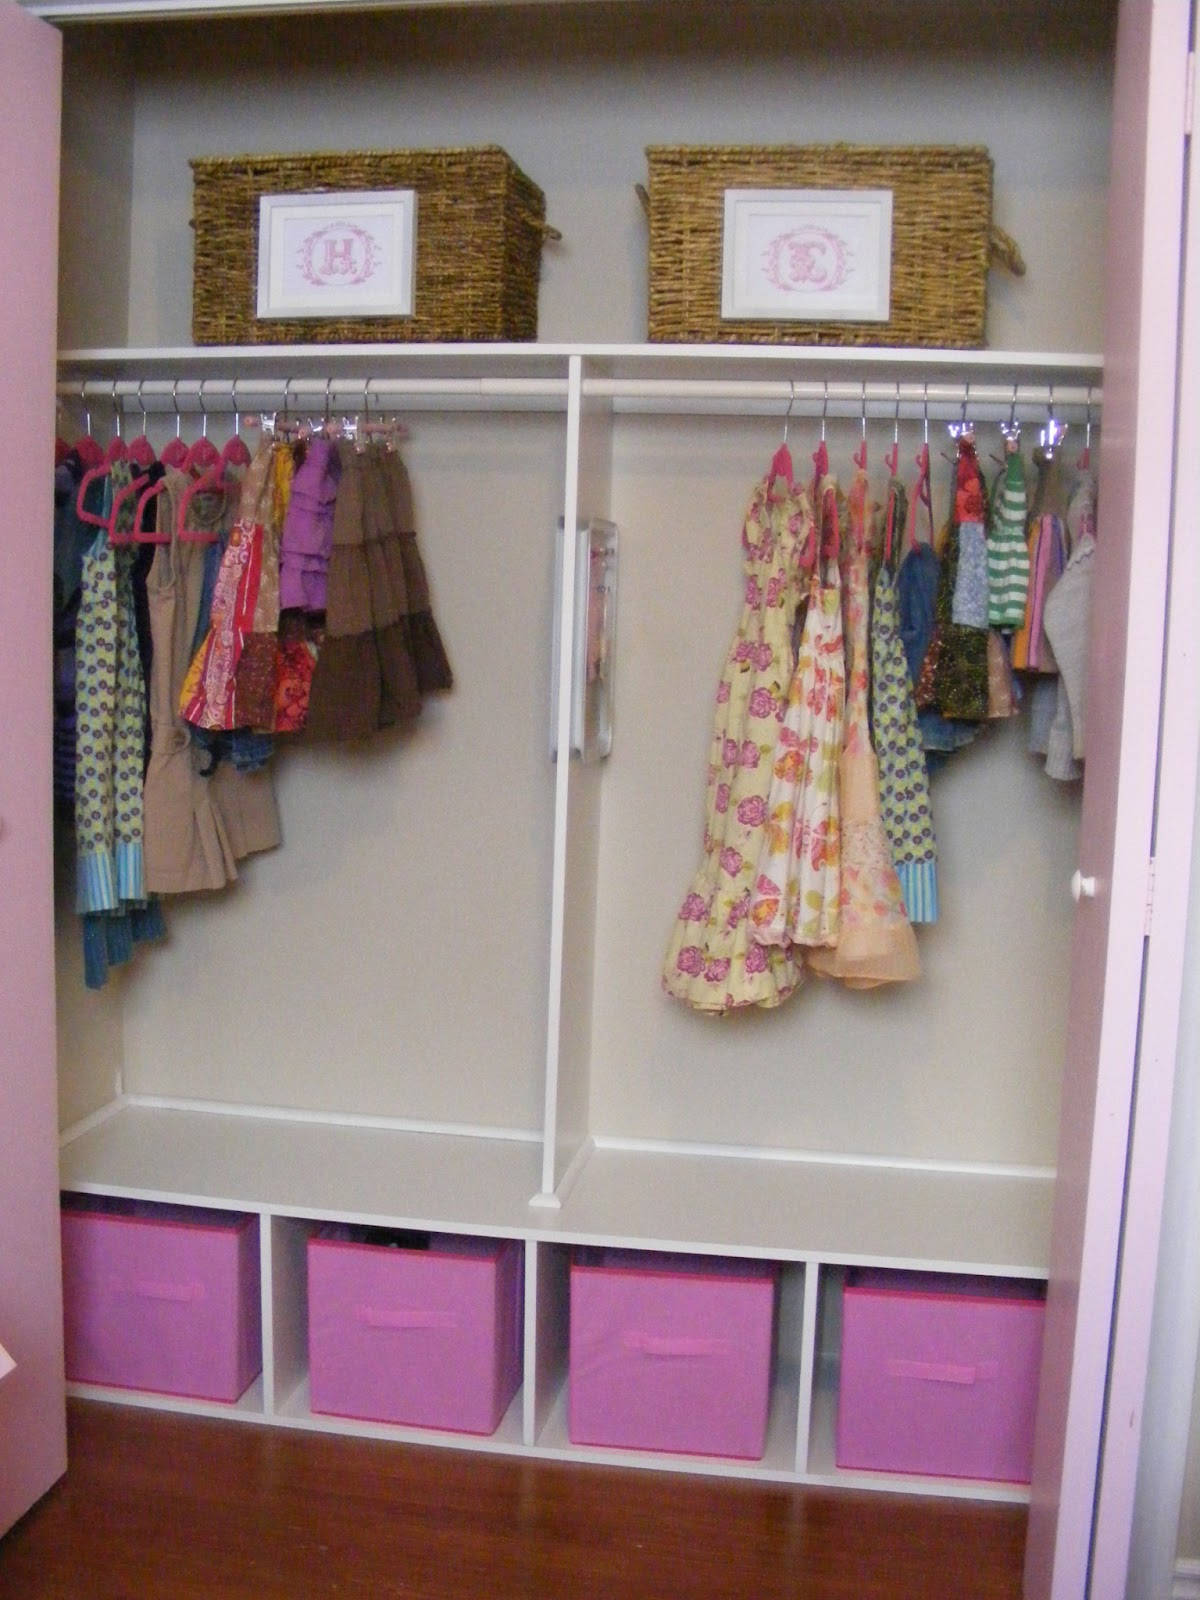 An organized and girly closet for two the complete guide to imperfect homemaking for How to organize bedroom closet